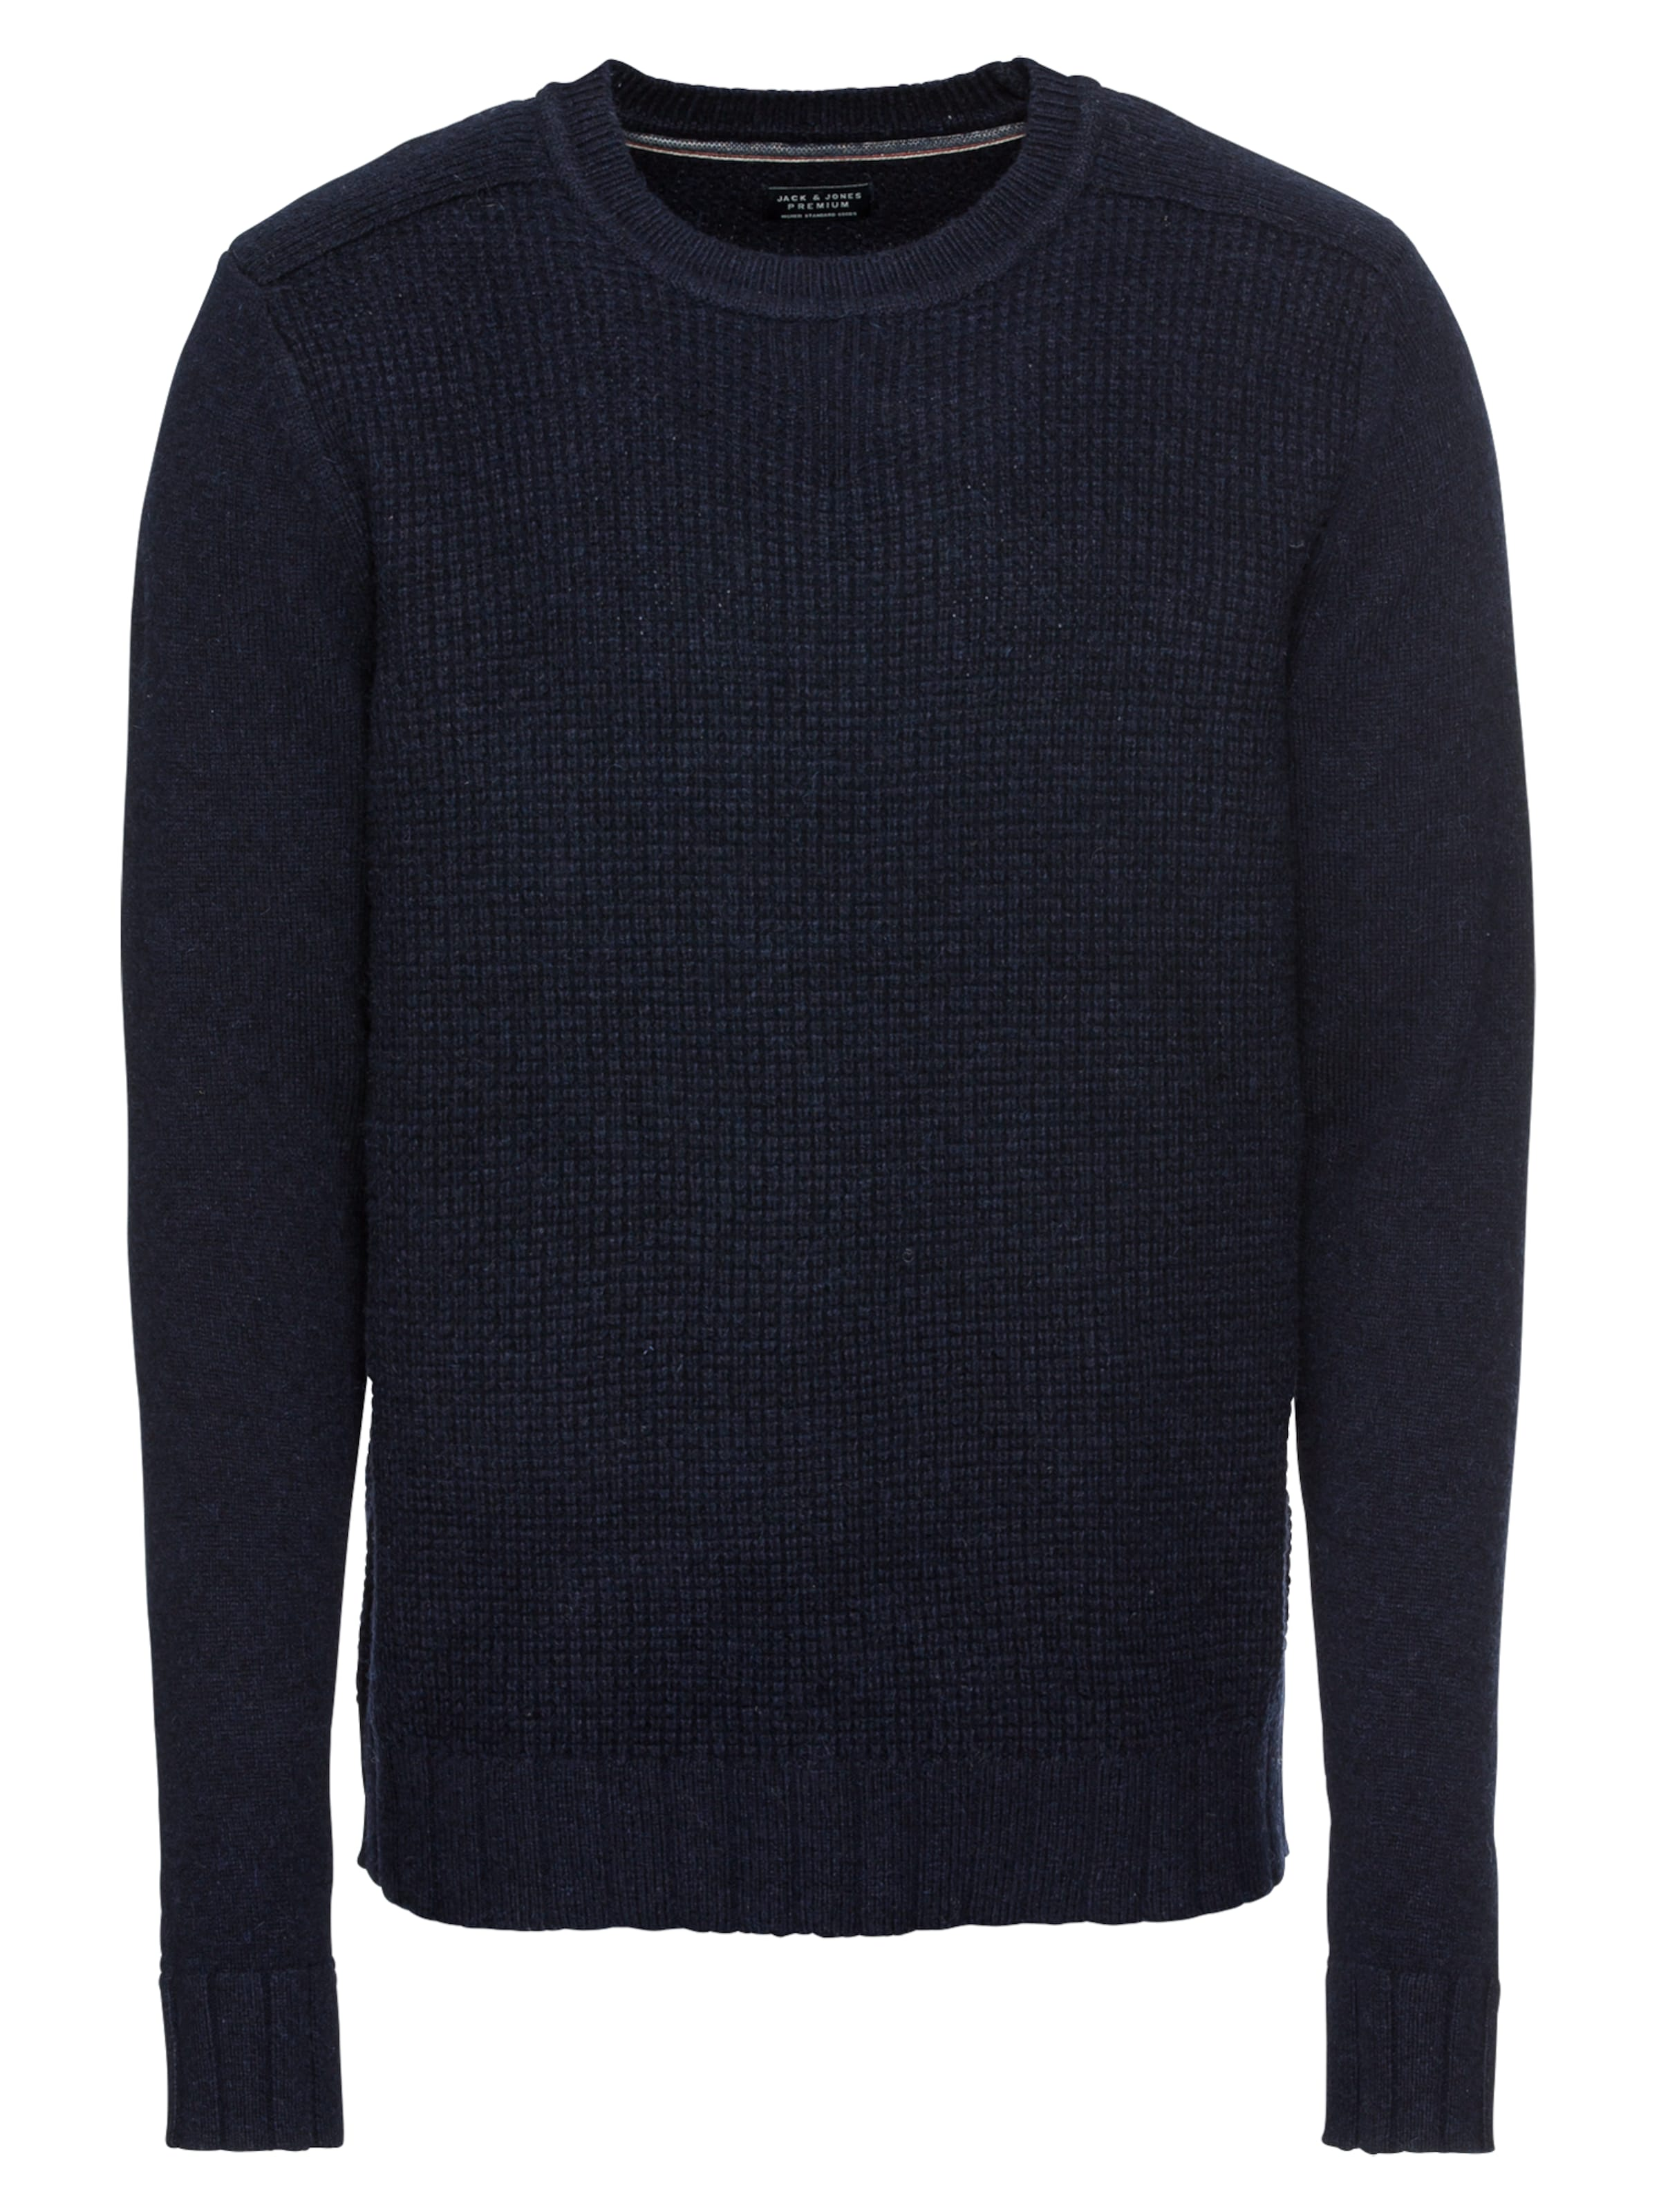 Jones over Pull Bleu 'jprrossy Jackamp; Neck' Knit En Crew Marine SMpzVLqUG